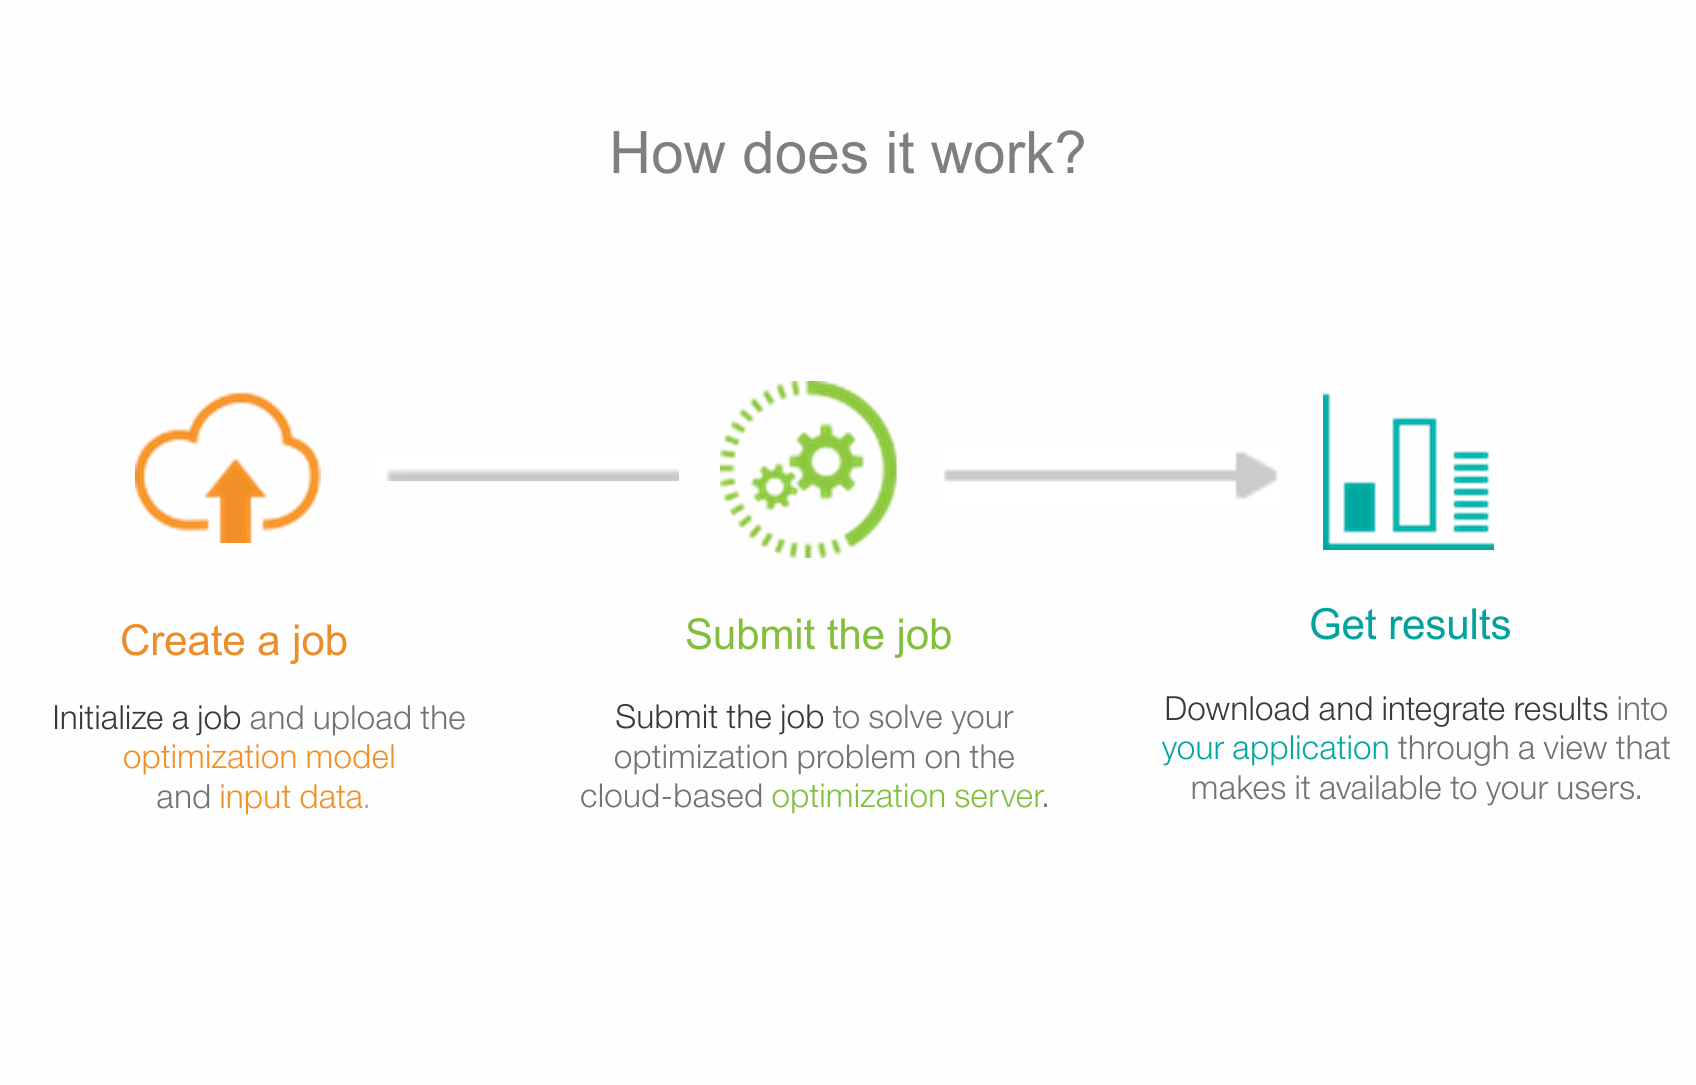 Use our API to submit a job and stream back solution data to your application